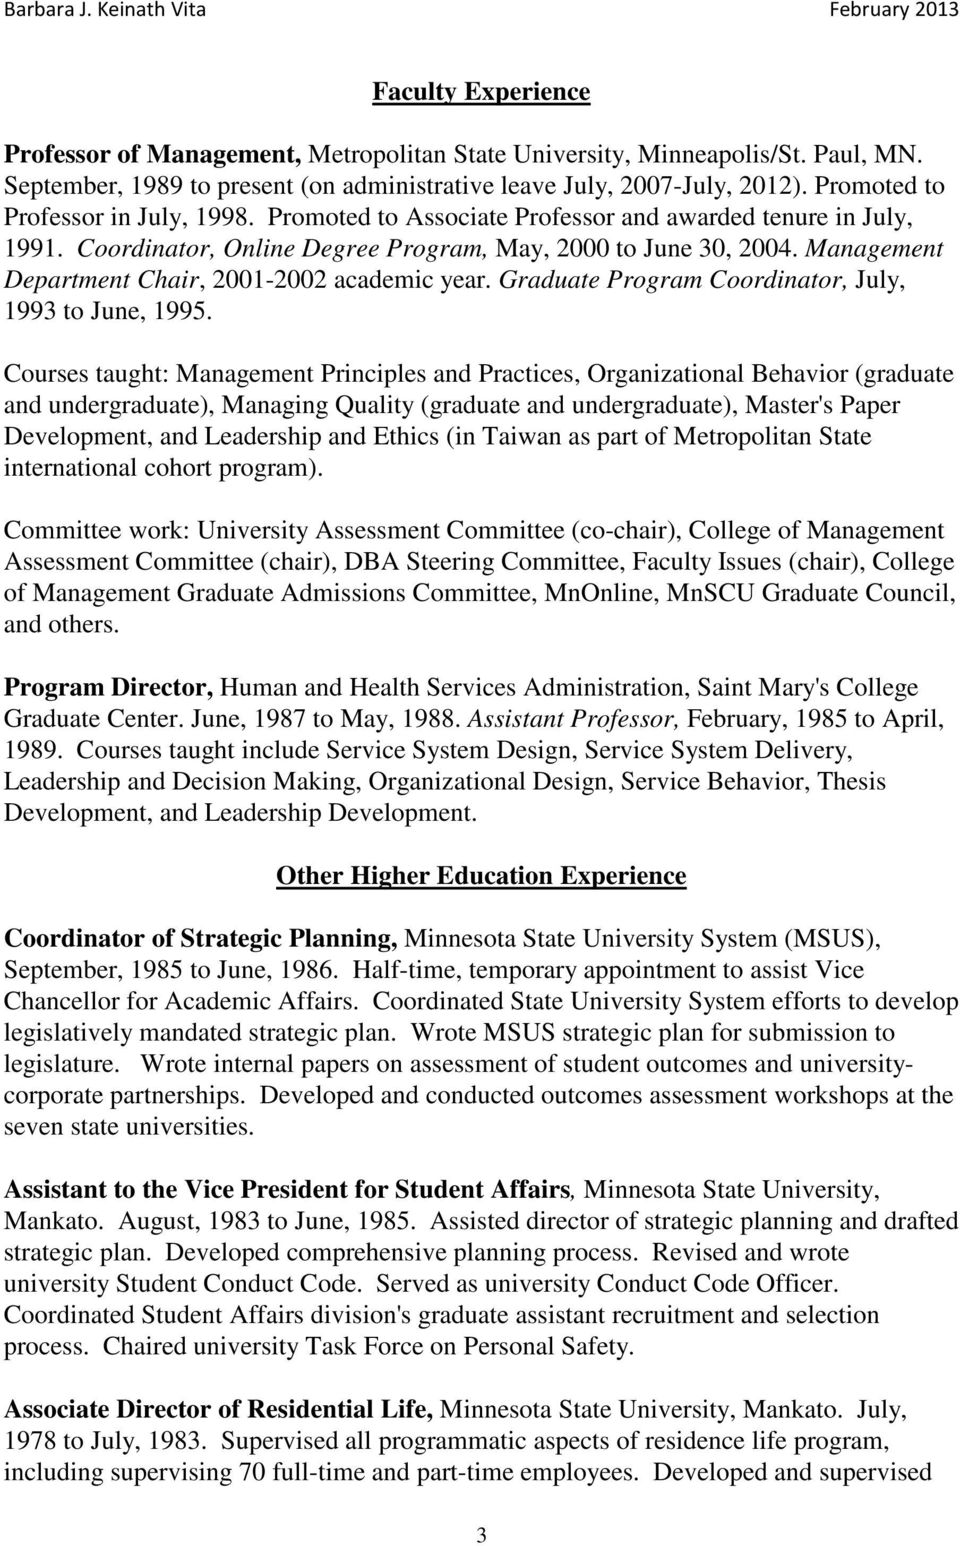 Management Department Chair, 2001-2002 academic year. Graduate Program Coordinator, July, 1993 to June, 1995.